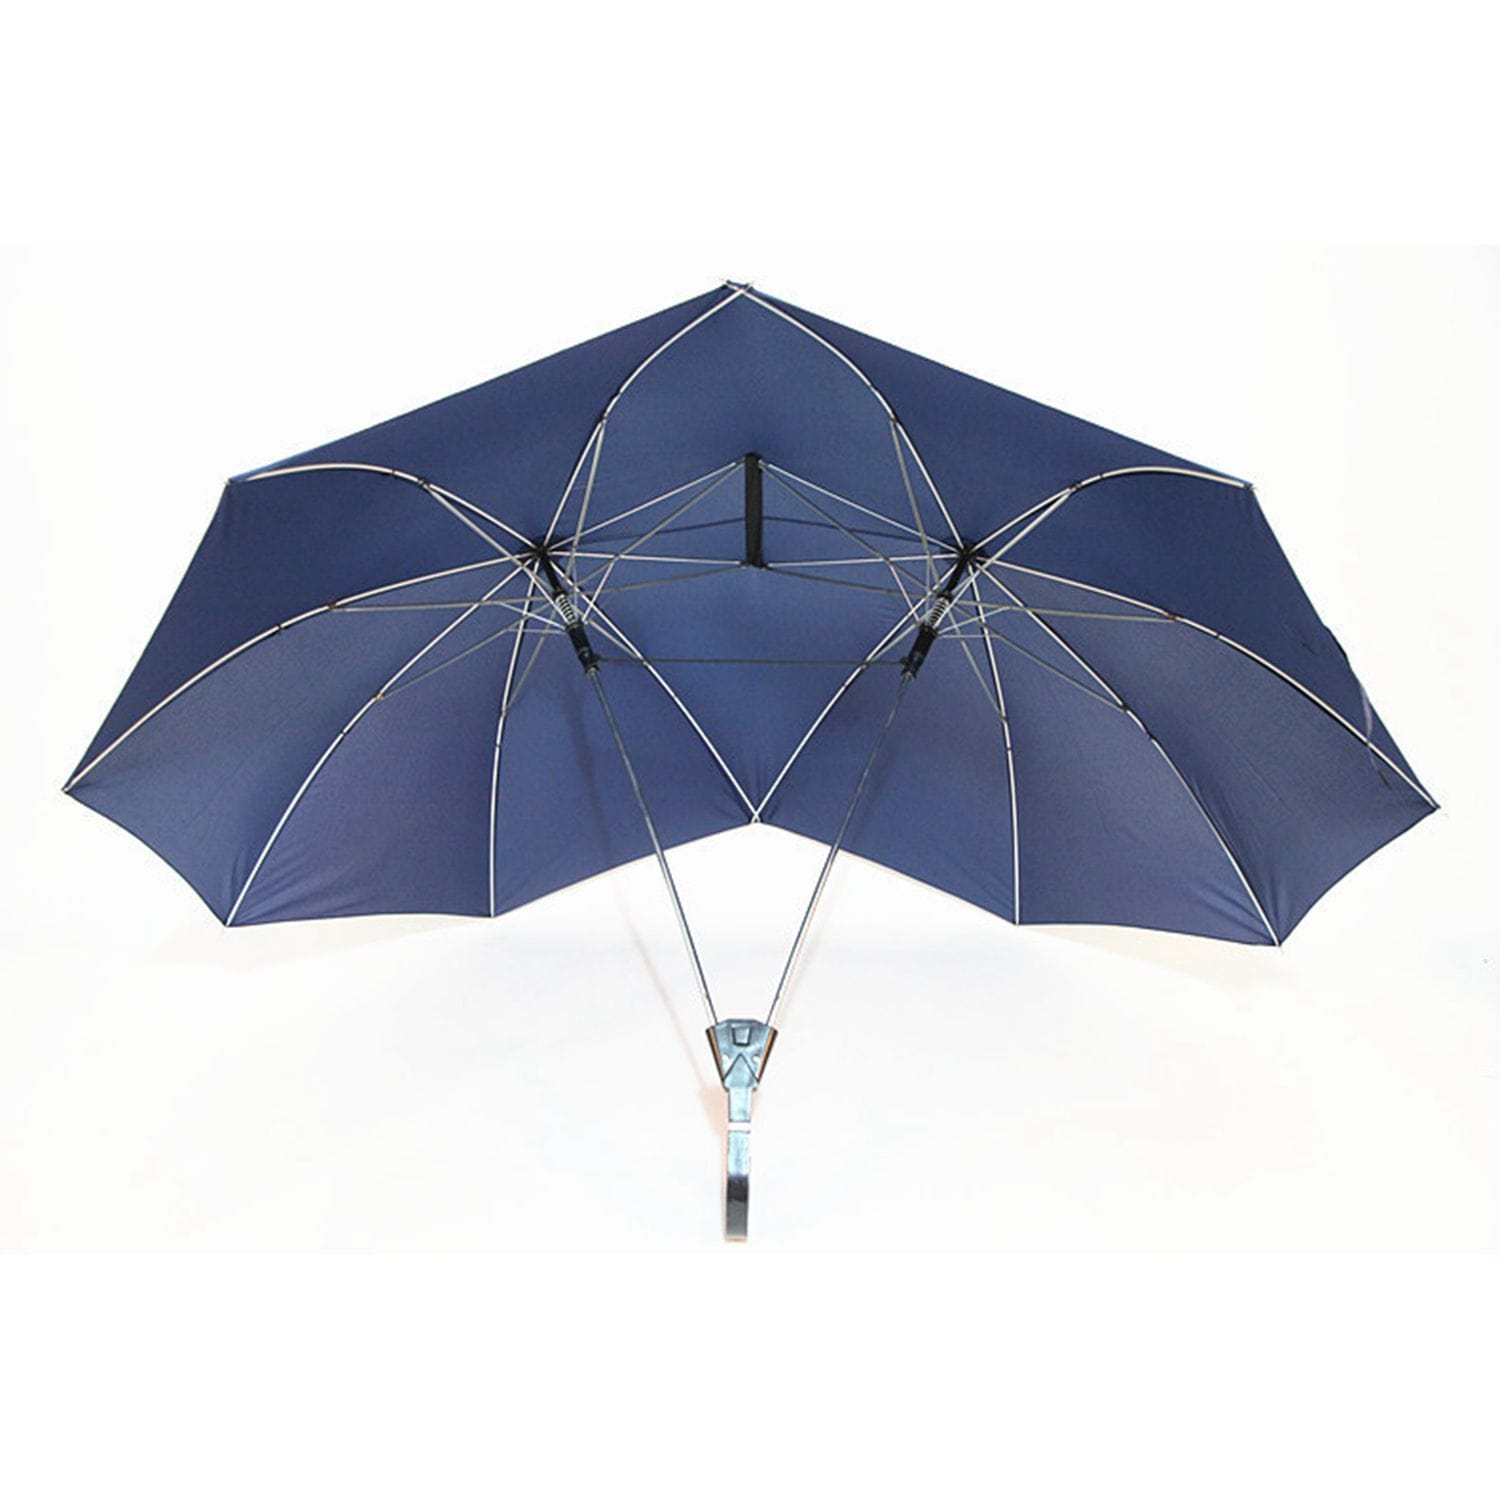 Couple Conjoined Umbrella For $45.55 Only